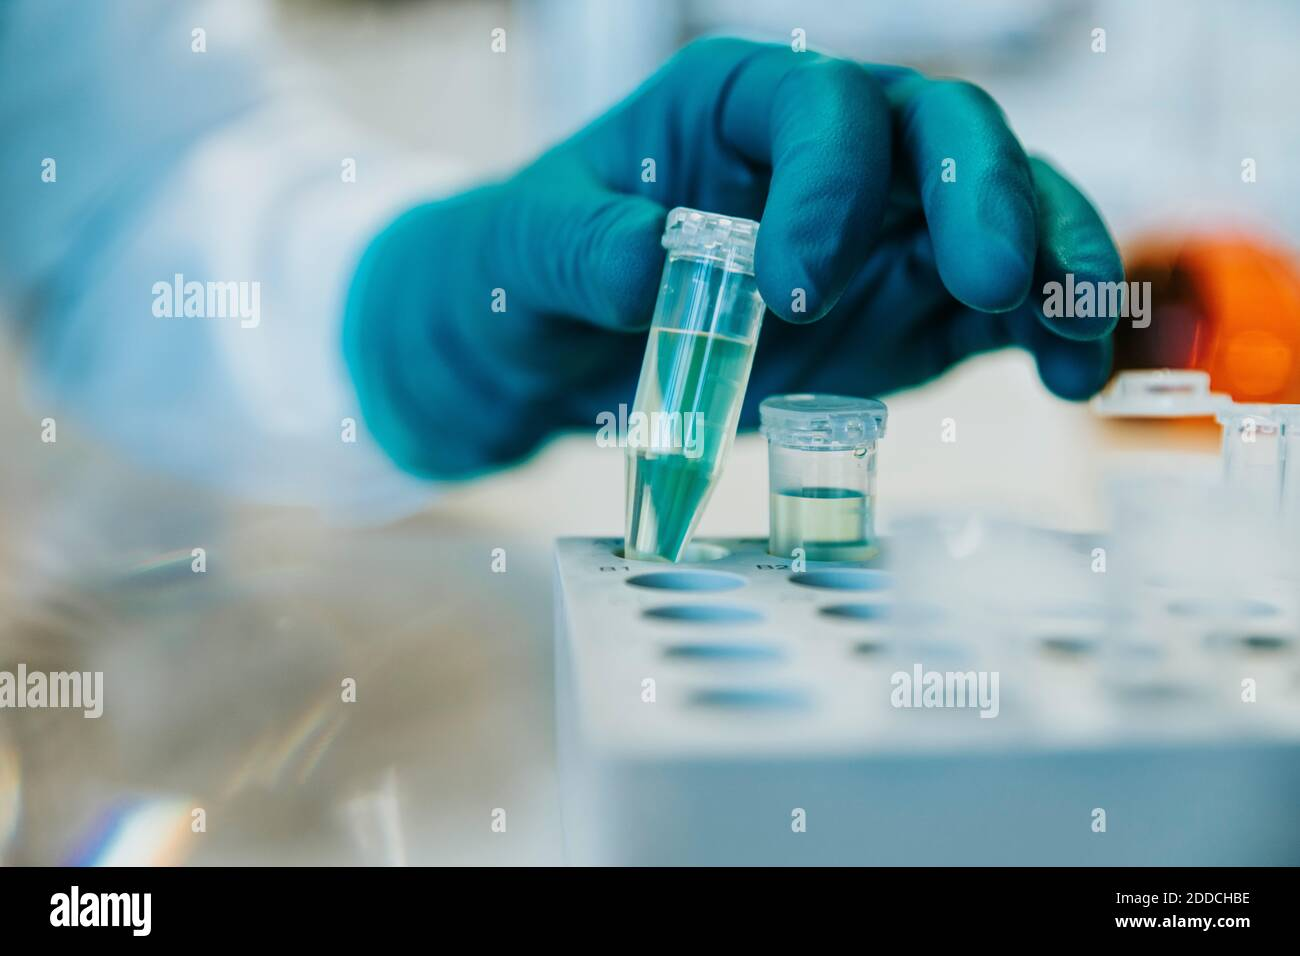 Woman wearing protective glove holding test tube while standing at laboratory Stock Photo